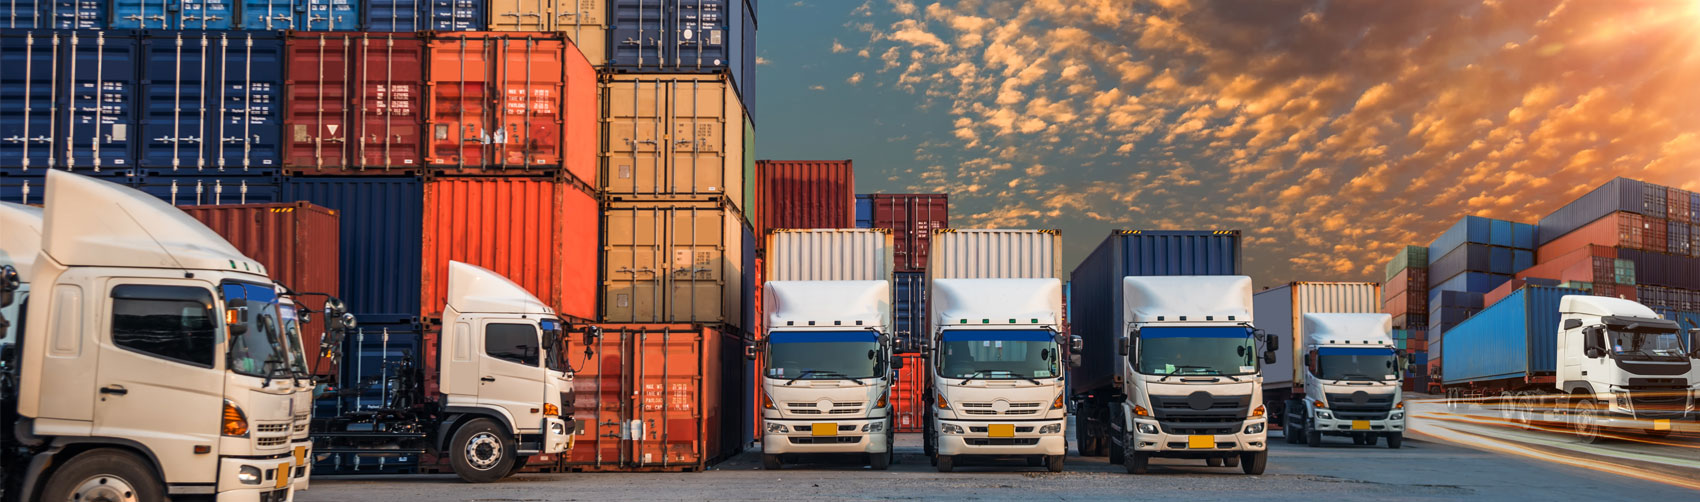 The role of BRI in developing trade corridors